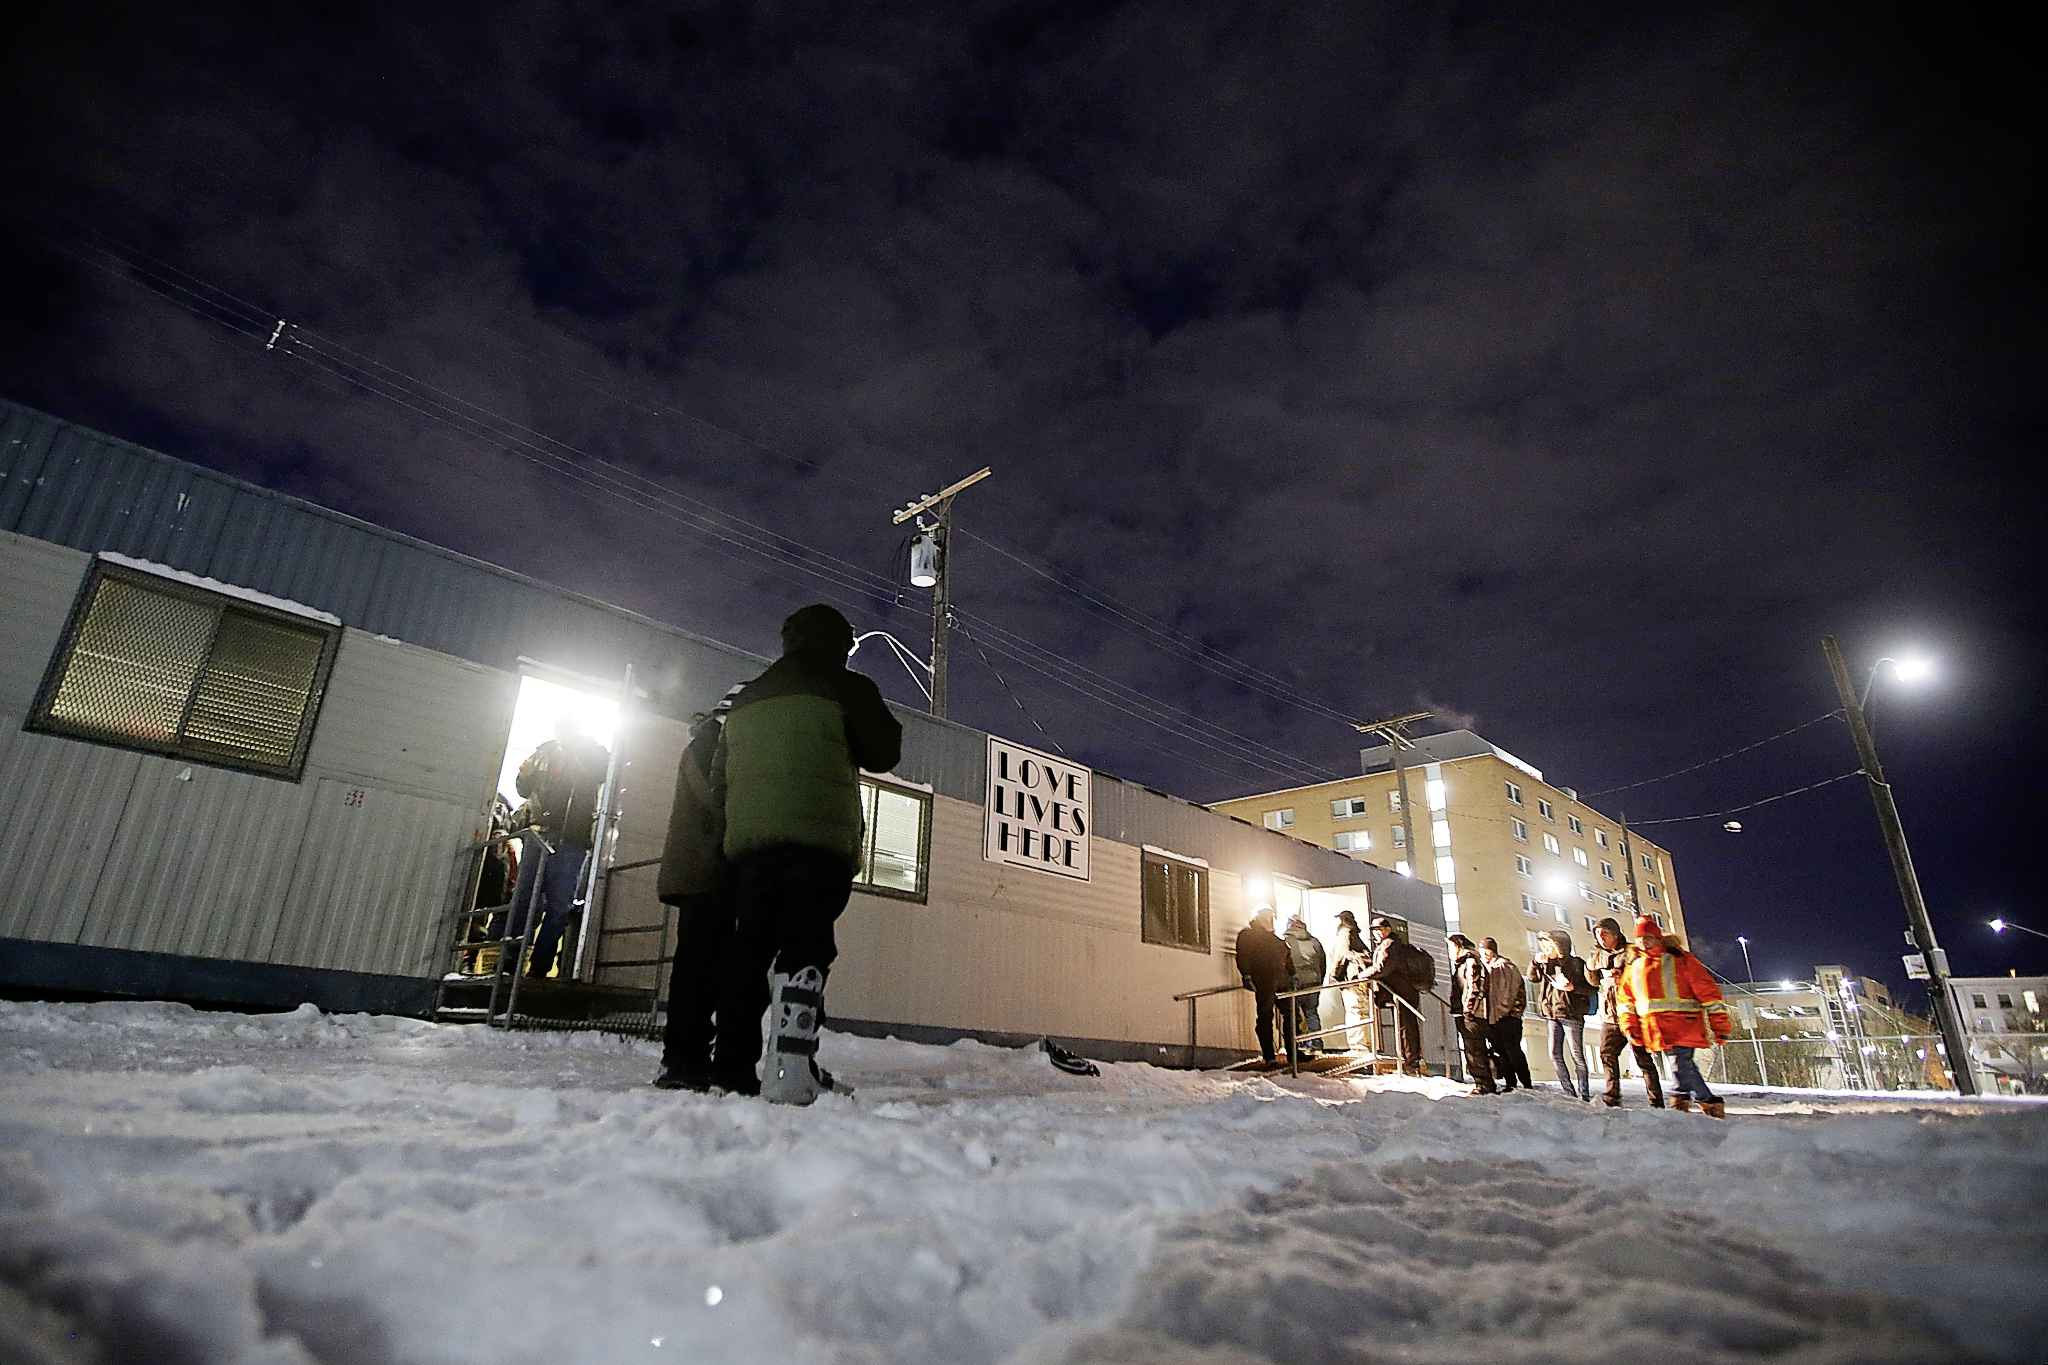 People begin to gather at the Love Lives Here mission.